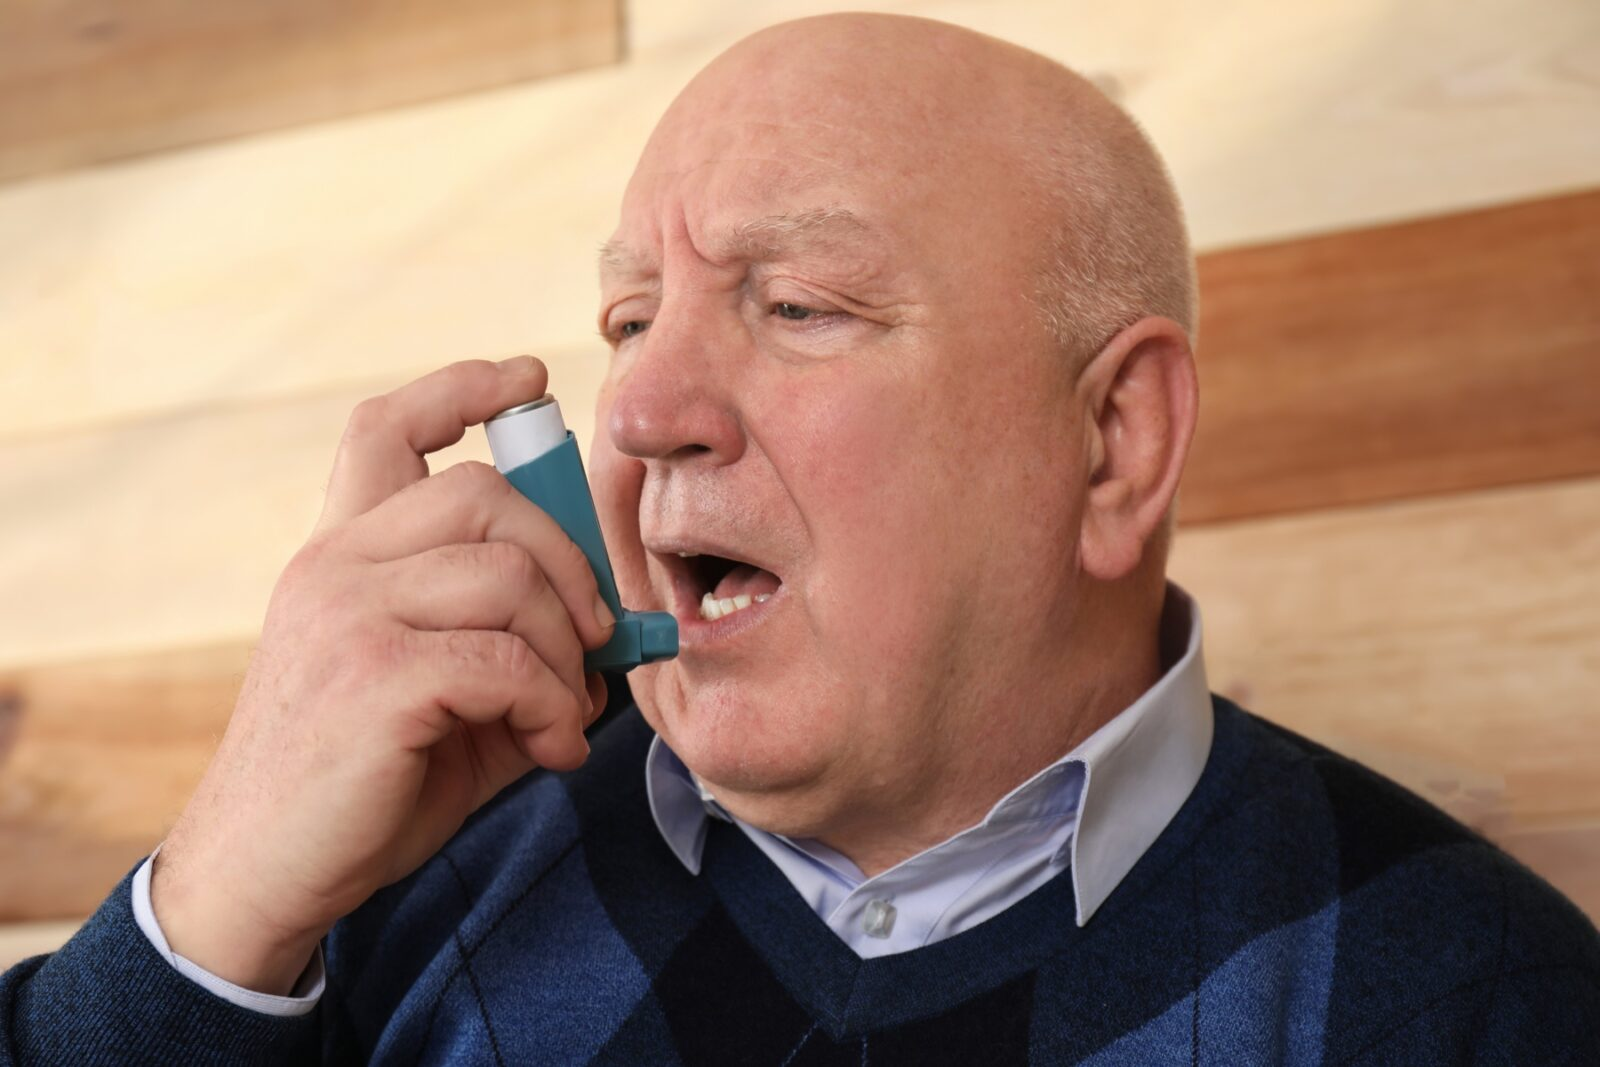 Older man living with chronic asthma